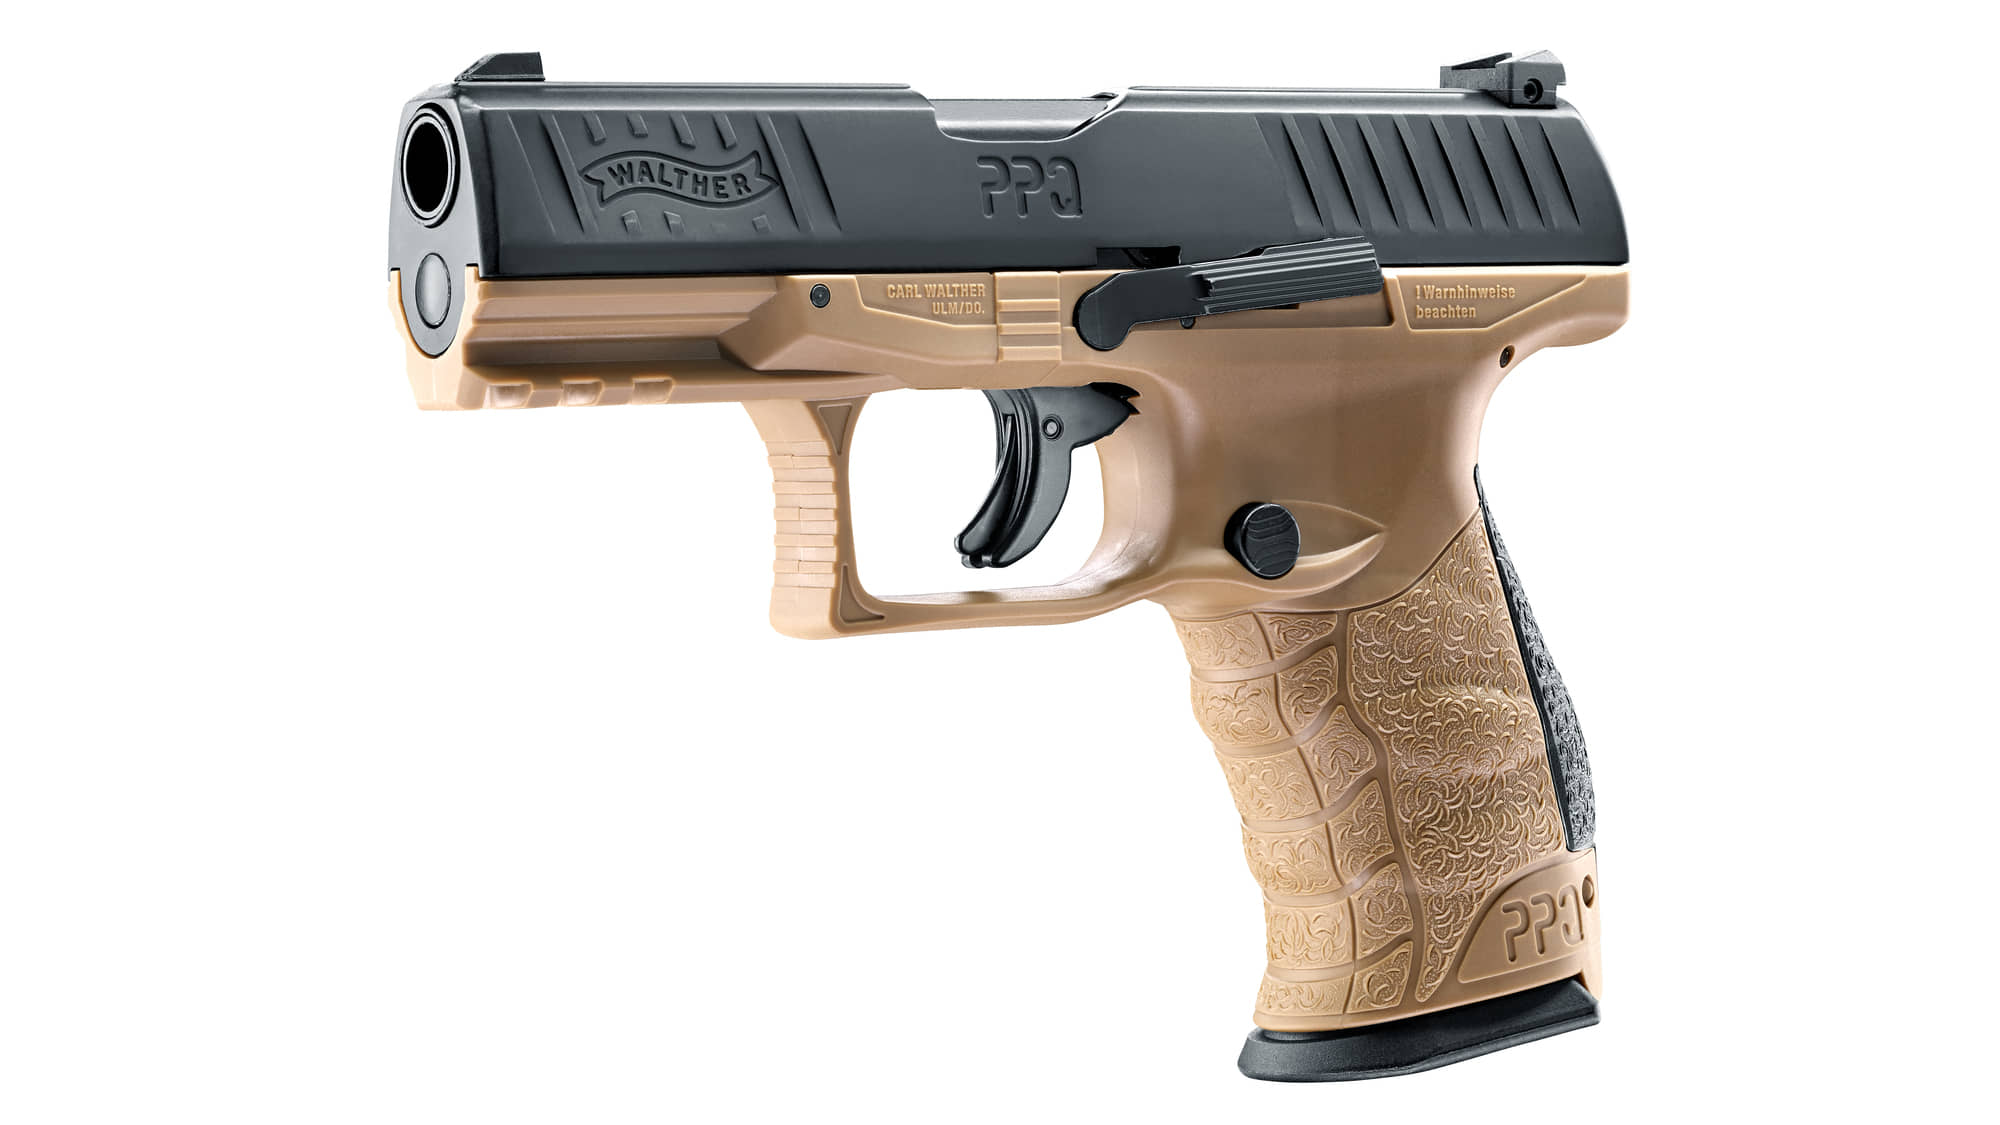 AD822-Pistolet CO2 Walther PPQ M2 T4E tan cal. 43 - AD821C